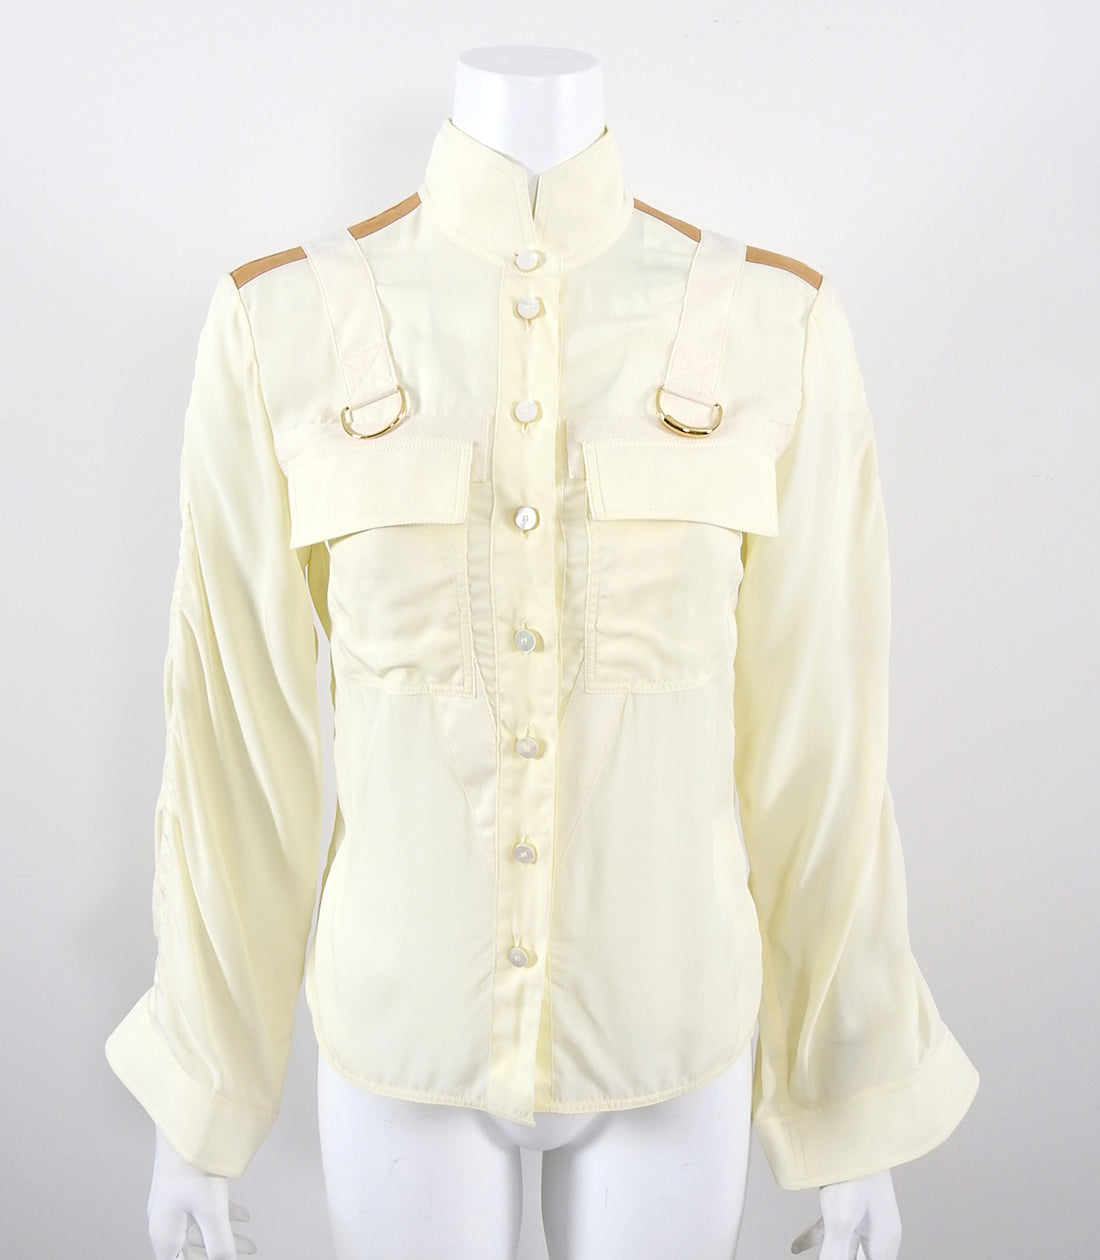 Chloe Cream Ruched Shirt with Strap Detail - 36 / 4